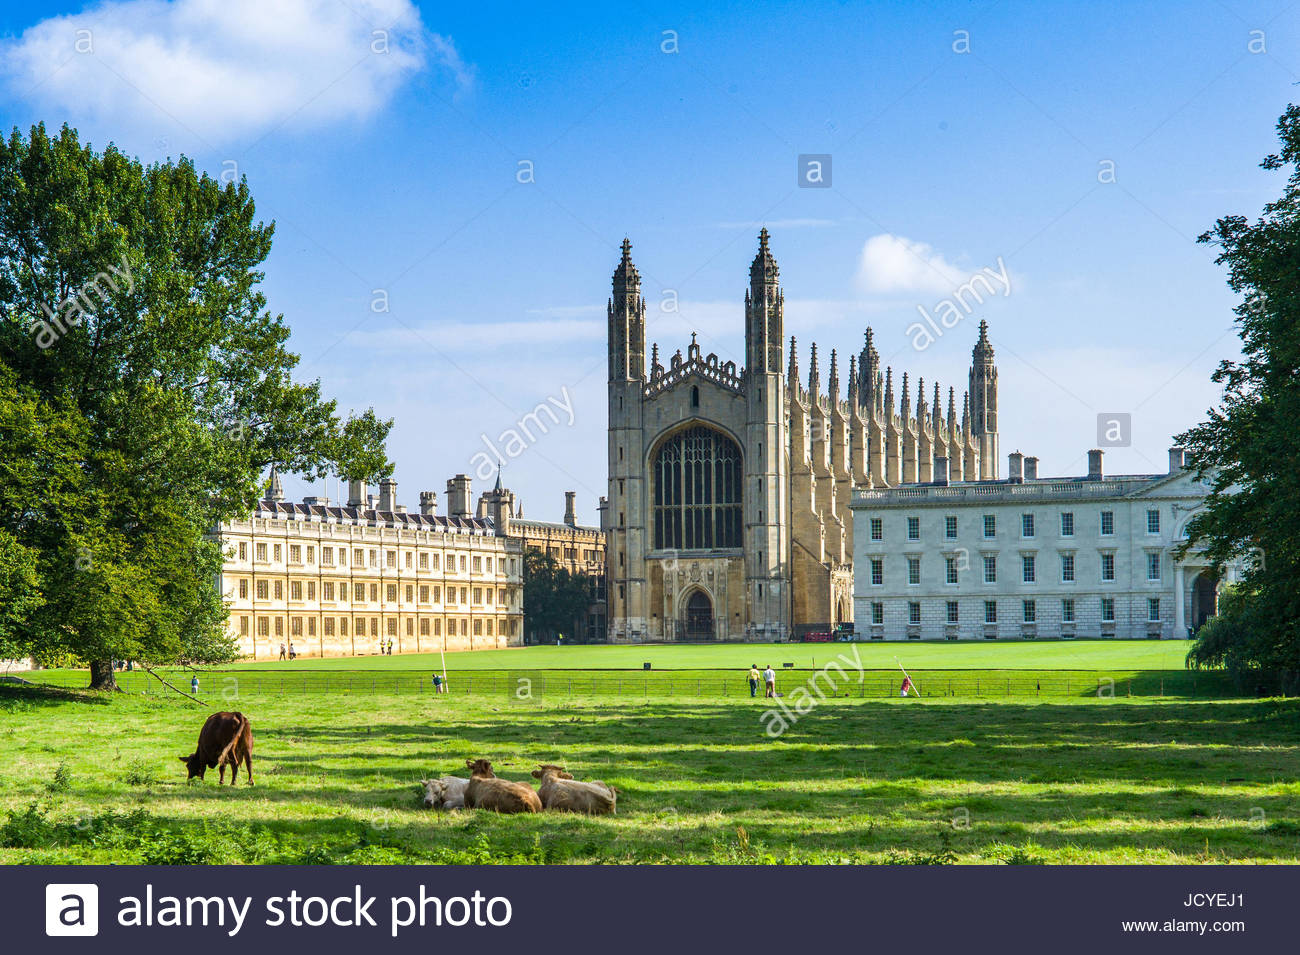 Cows graze on the Backs in front of Kings College Chapel, part of the University of Cambridge, Cambridge, UK - Stock Image